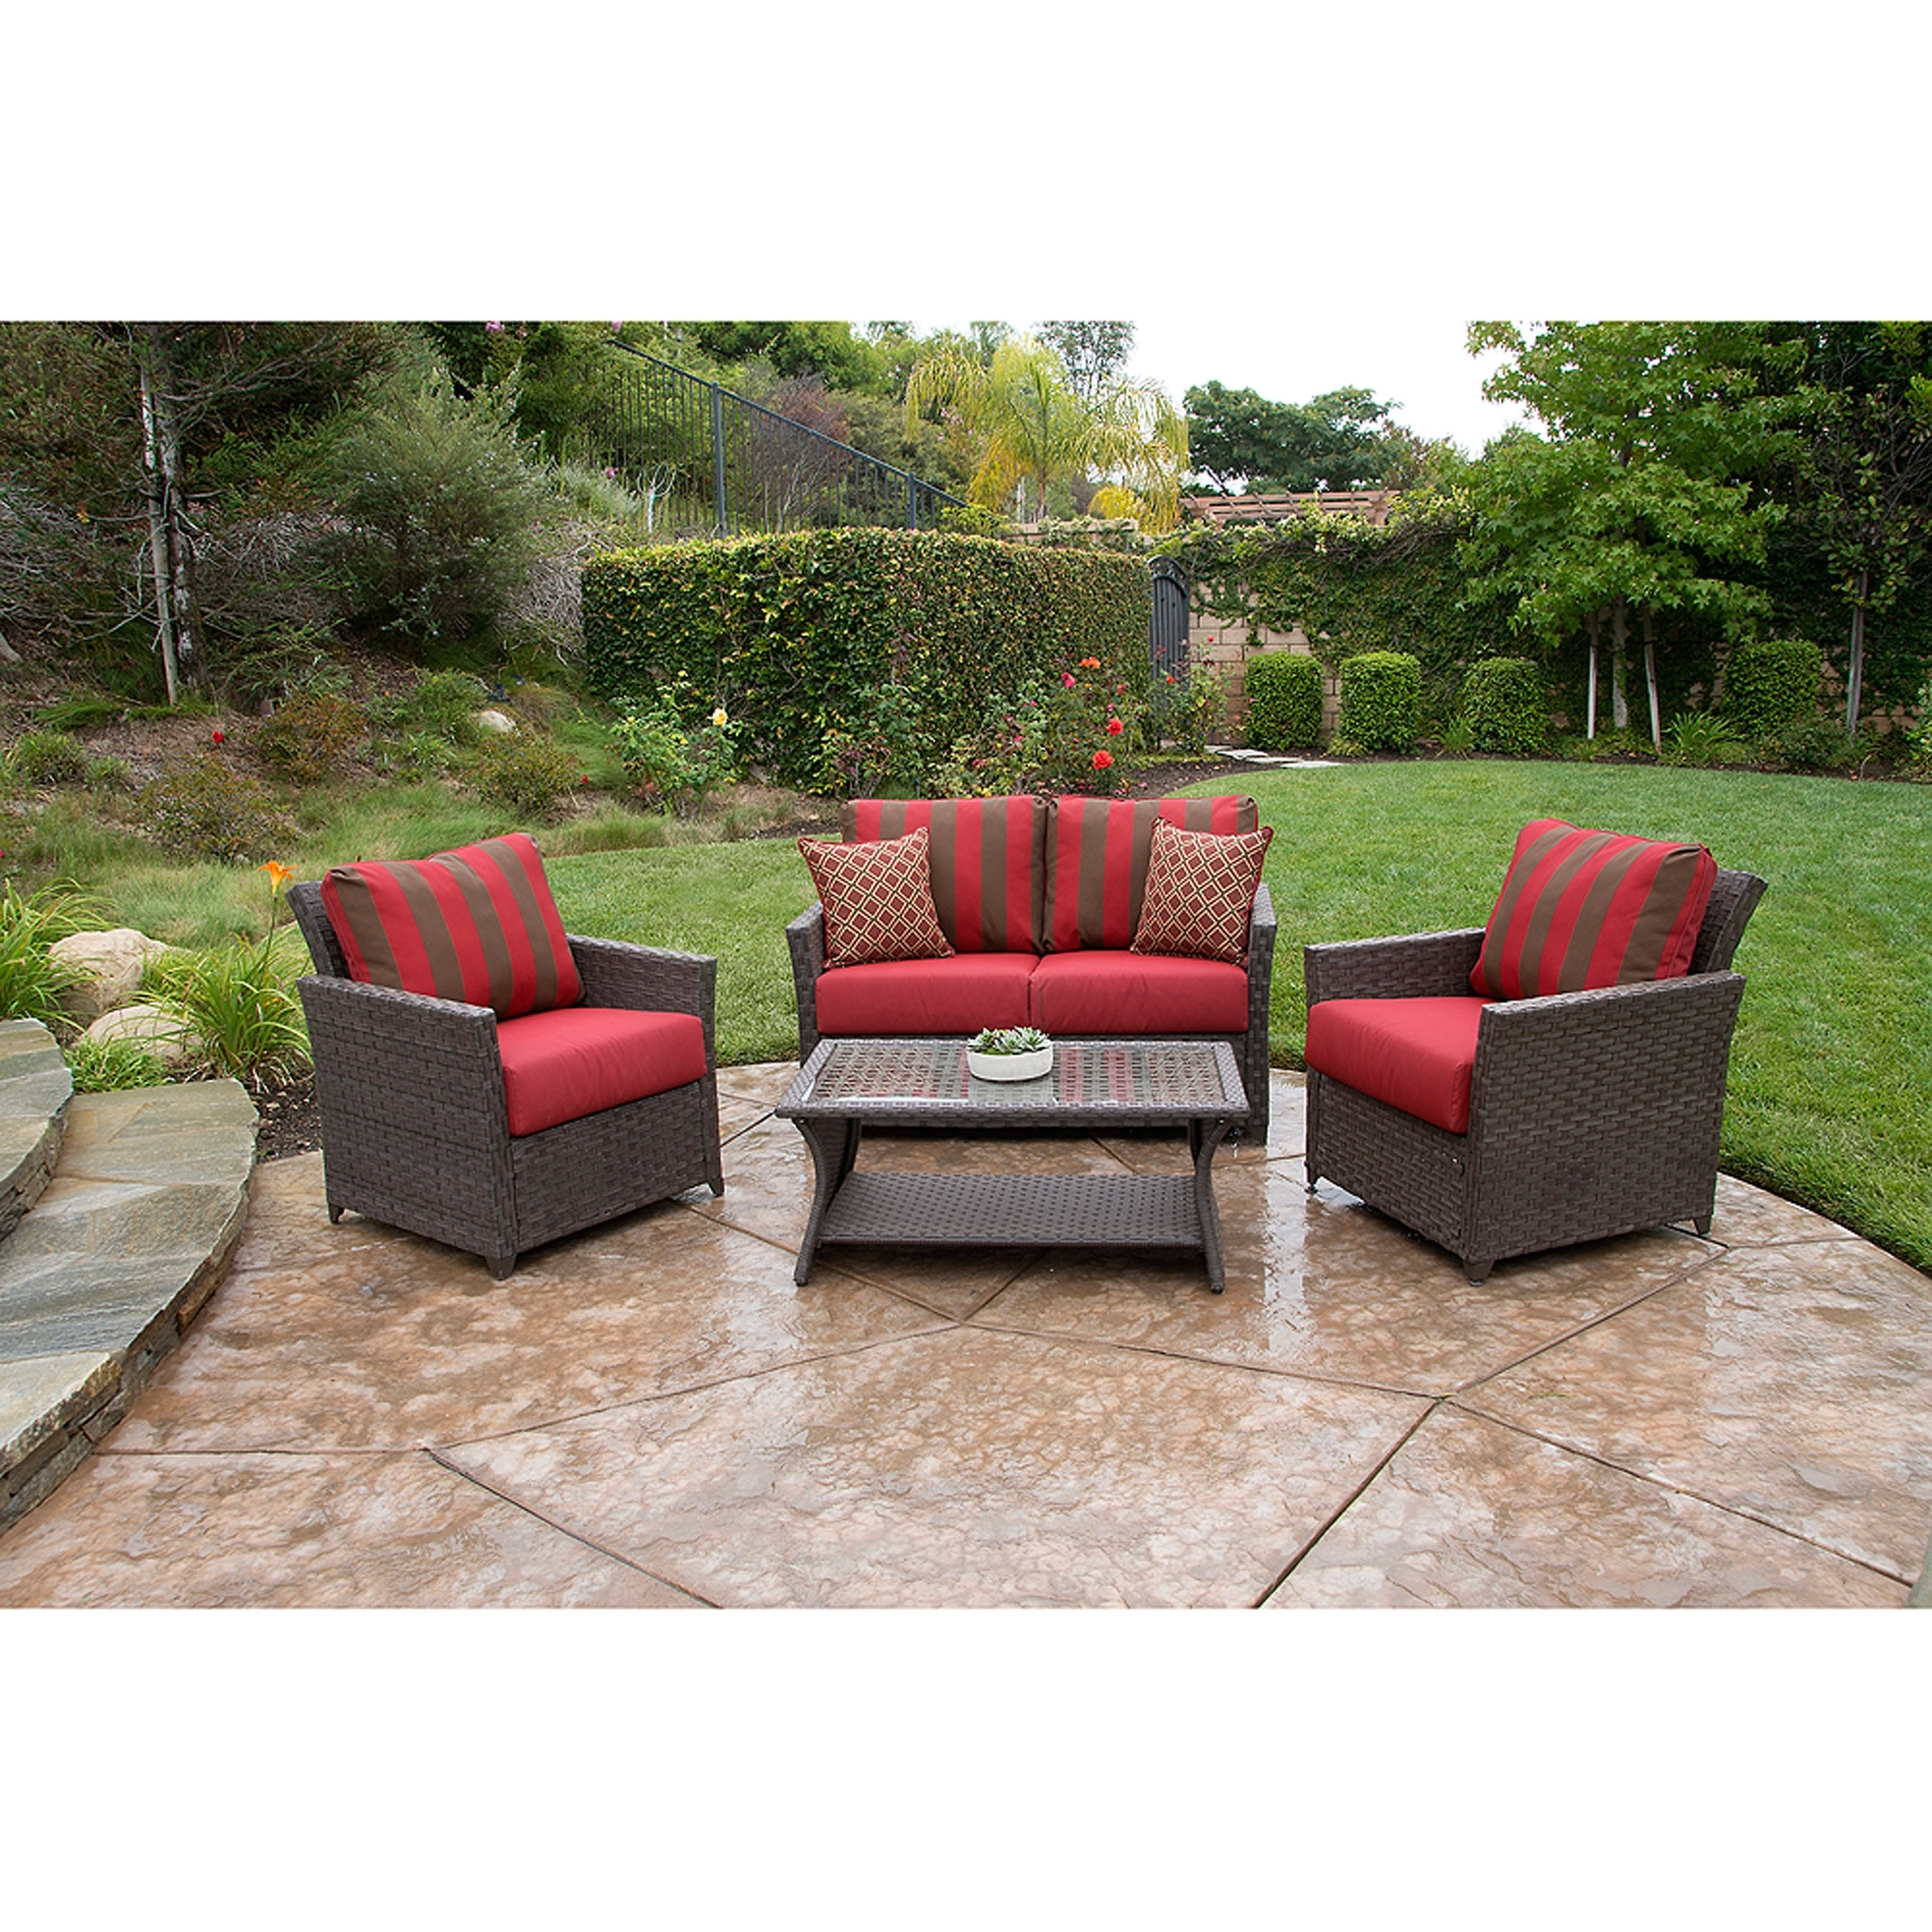 Better Homes And Gardens Rushreed Deep Seating 4 Piece Patio Regarding Most Current Deep Seating Patio Conversation Sets (View 2 of 15)